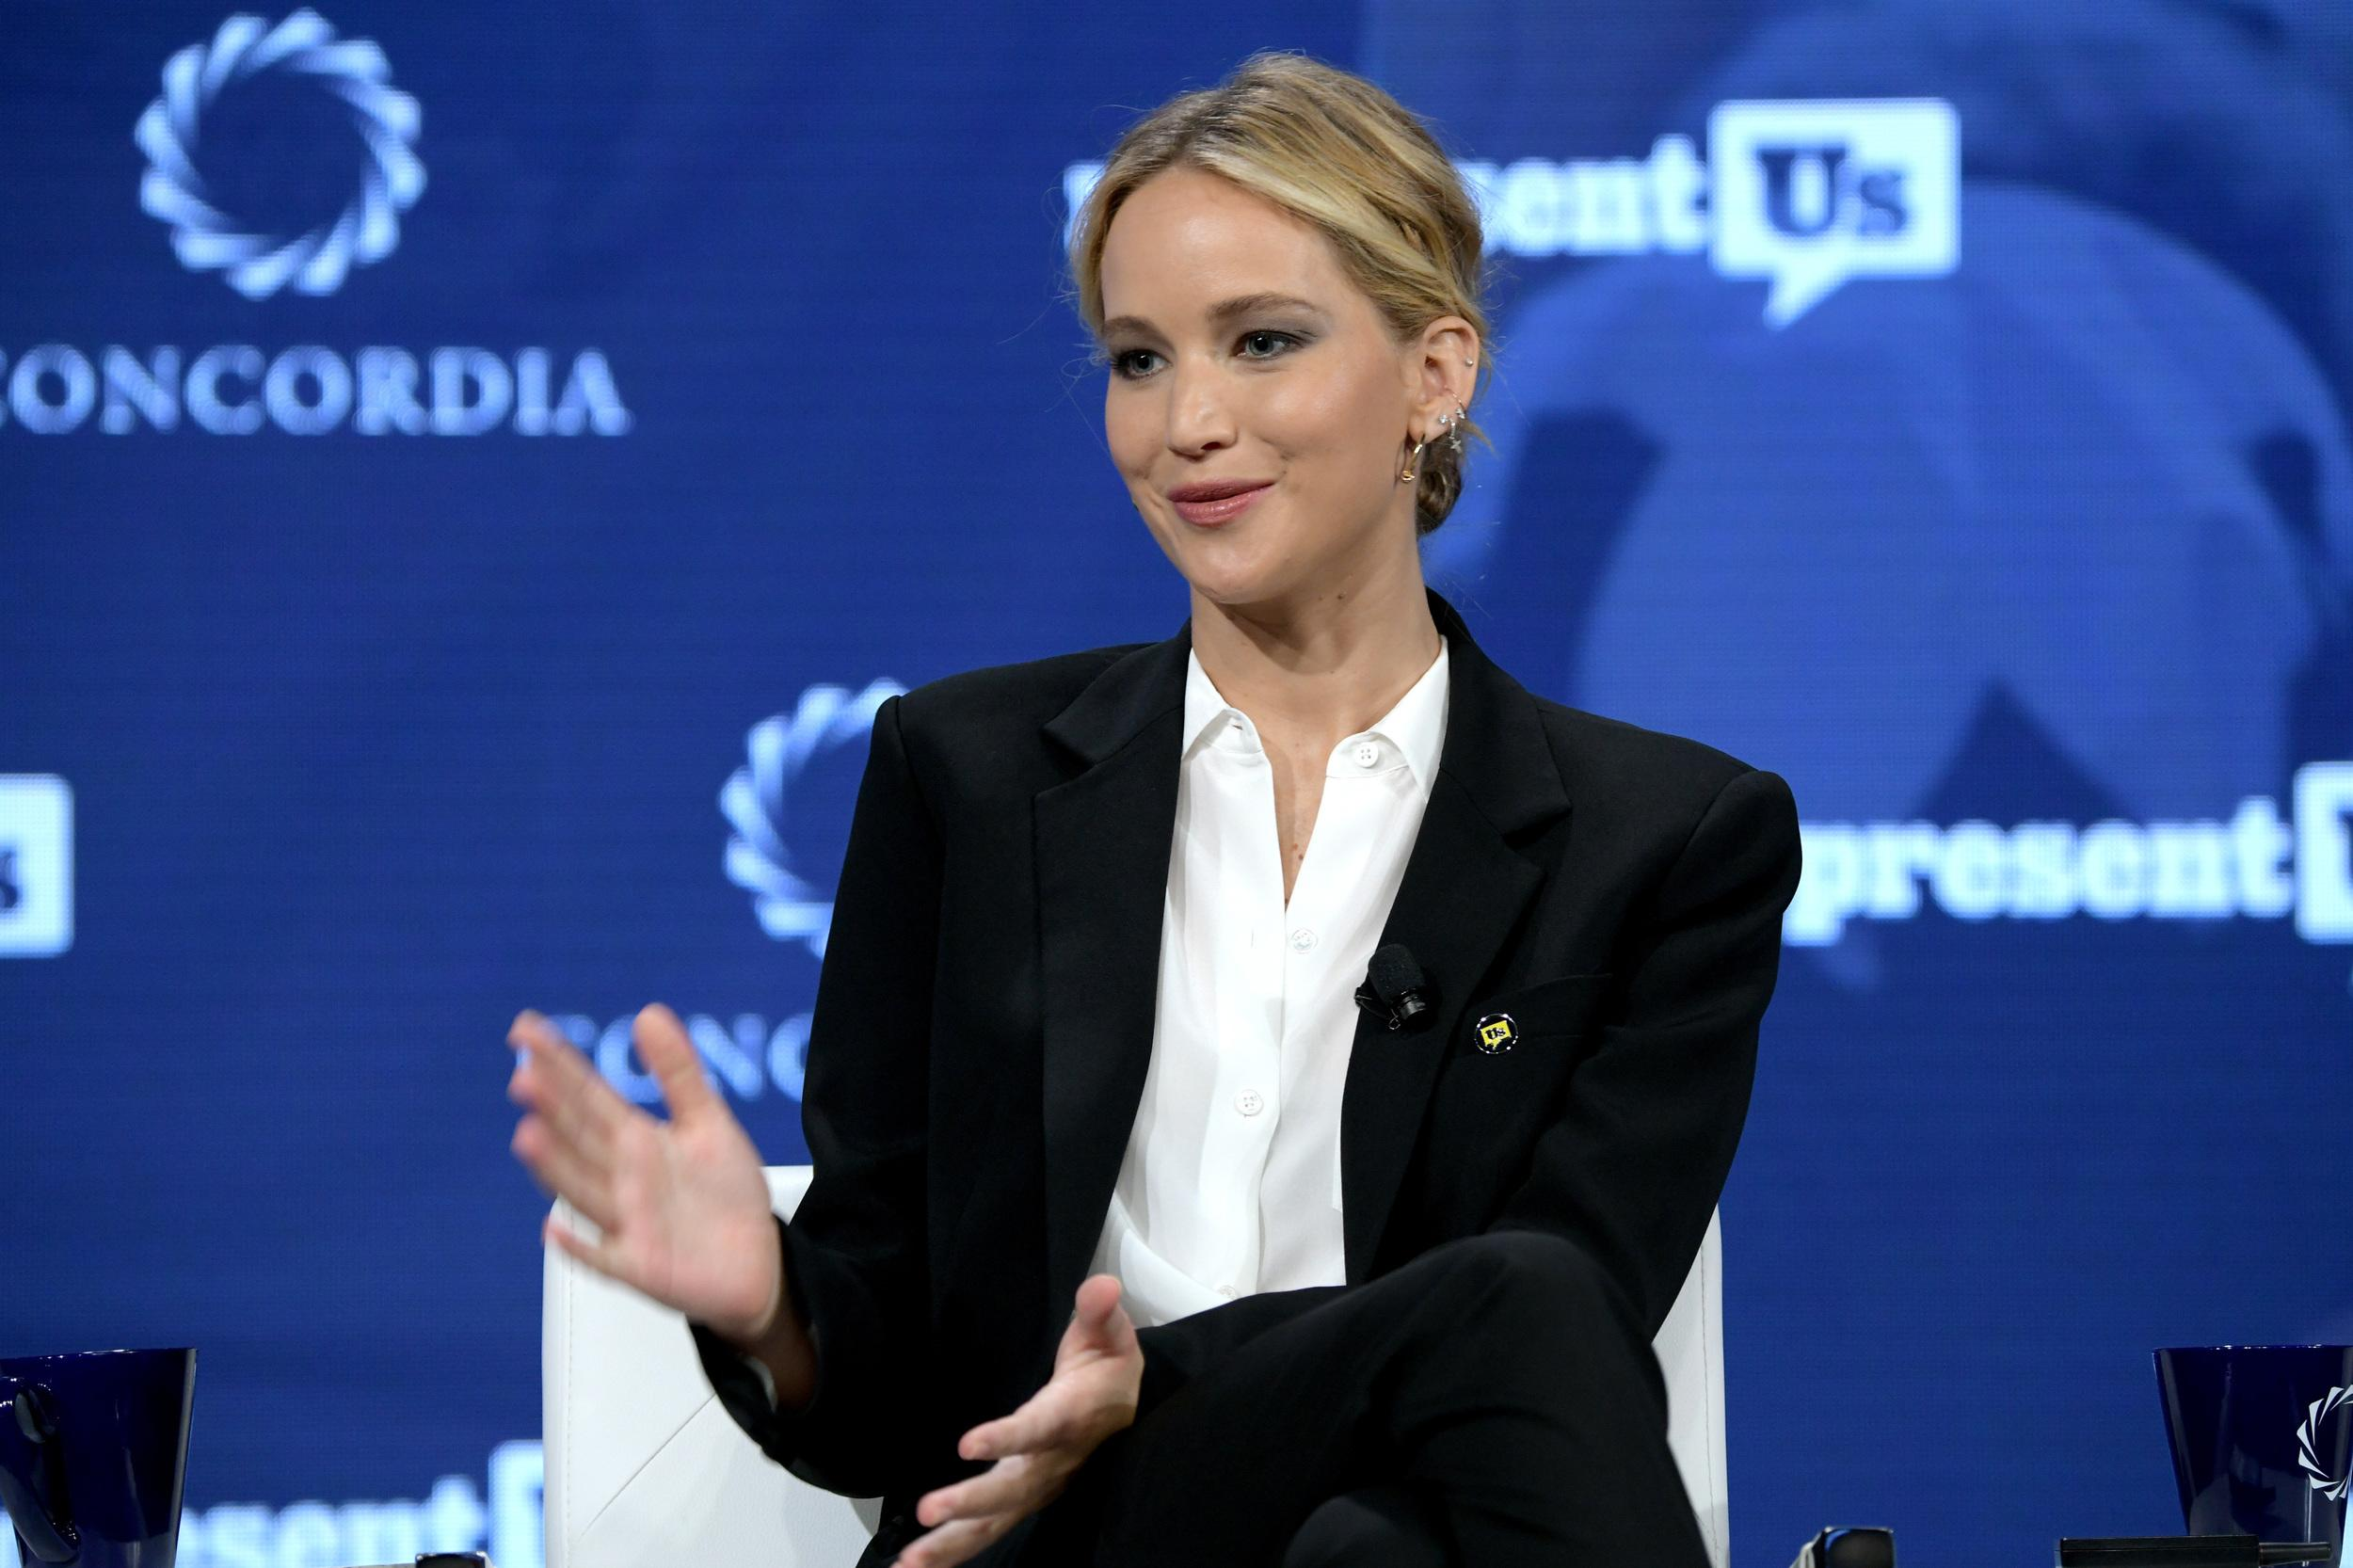 NEW YORK, NY - SEPTEMBER 25:  Actor and Board Member of RepresentUs Jennifer Lawrence speaks onstage during the 2018 Concordia Annual Summit - Day 2 at Grand Hyatt New York on September 25, 2018 in New York City.  (Photo by Leigh Vogel/Getty Images for Concordia Summit)